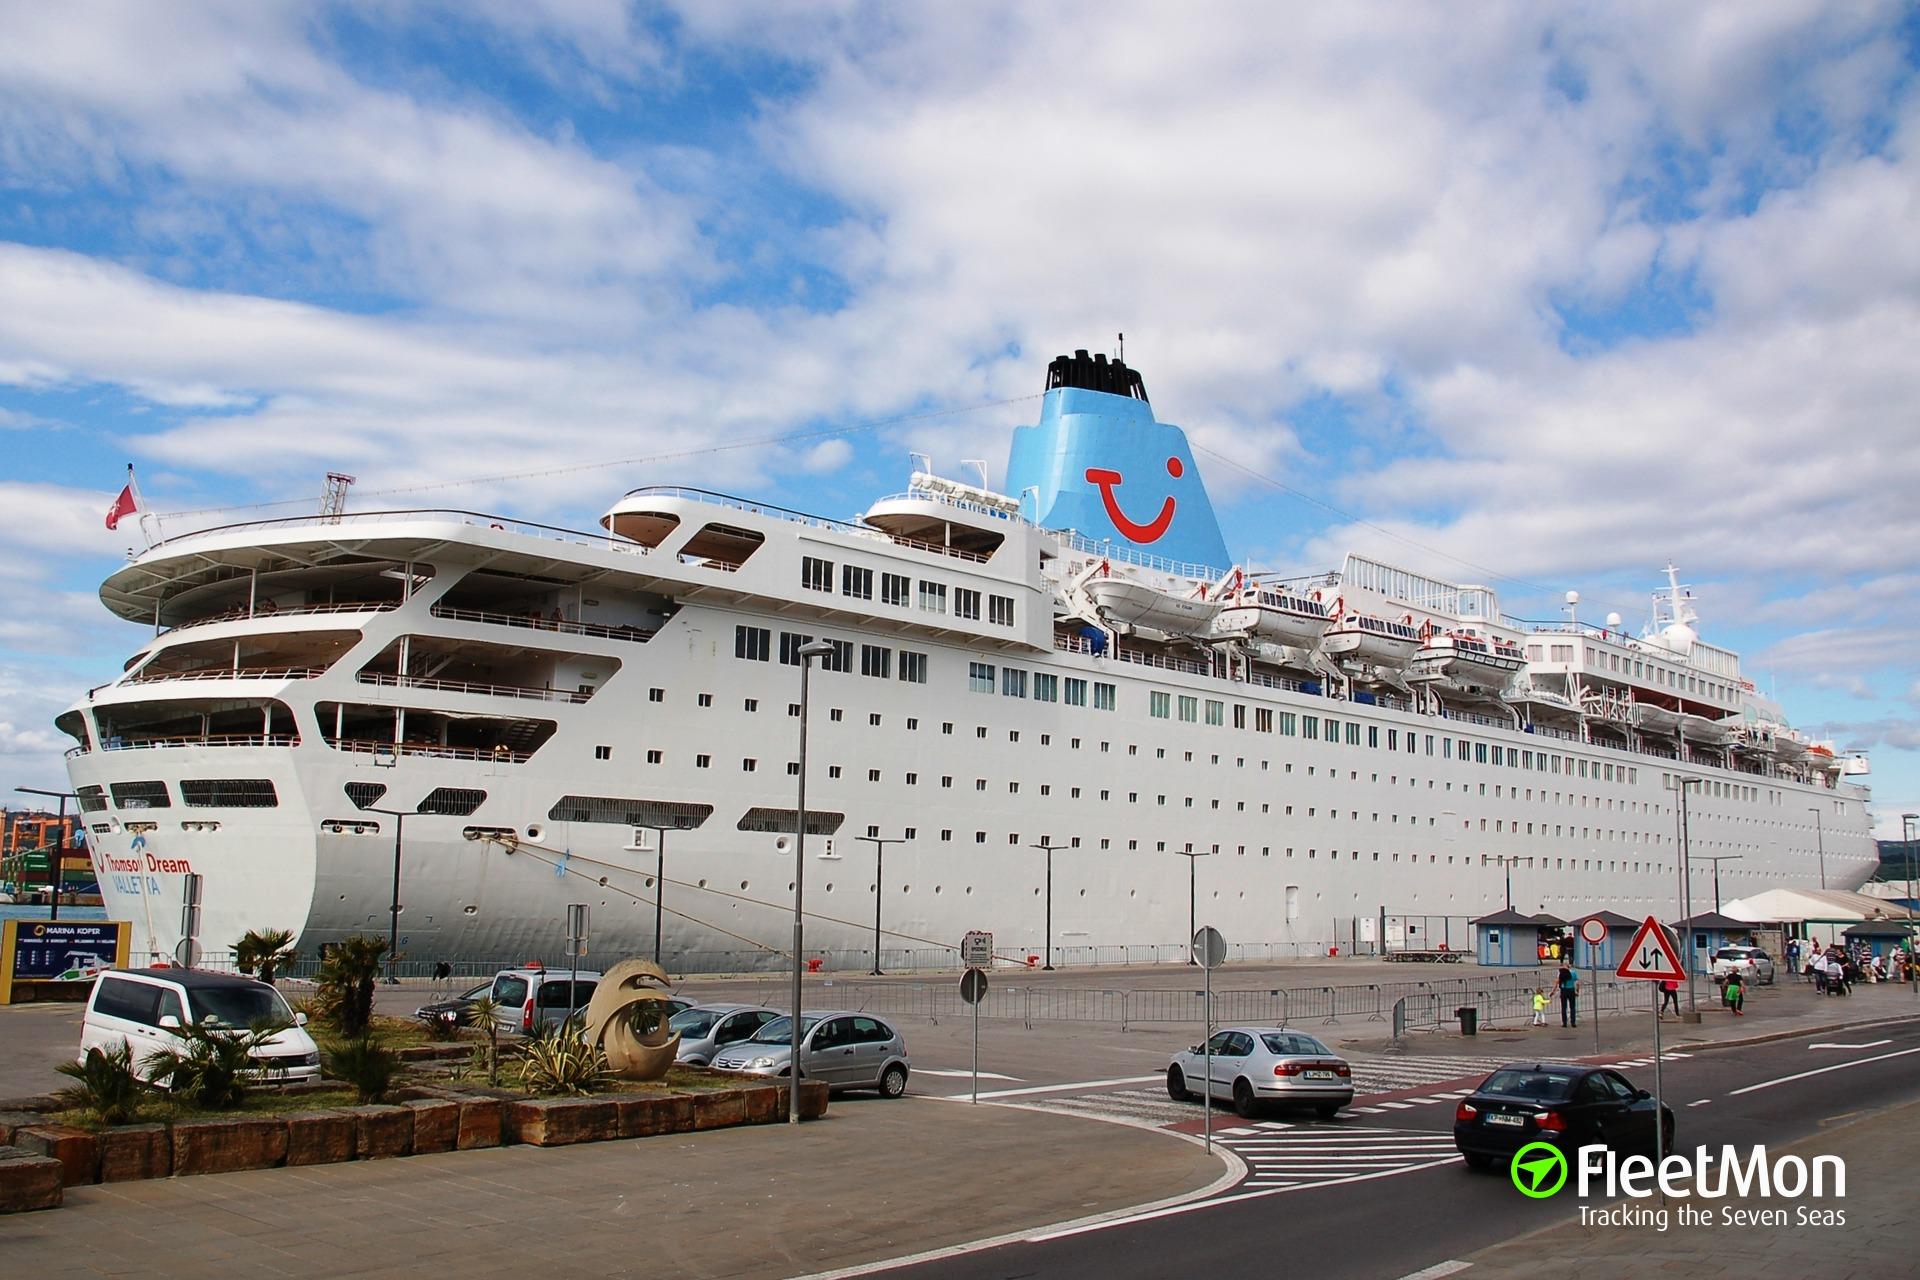 Gps Fleet Tracking Pricing >> MARELLA DREAM (Passenger ship) IMO 8407735